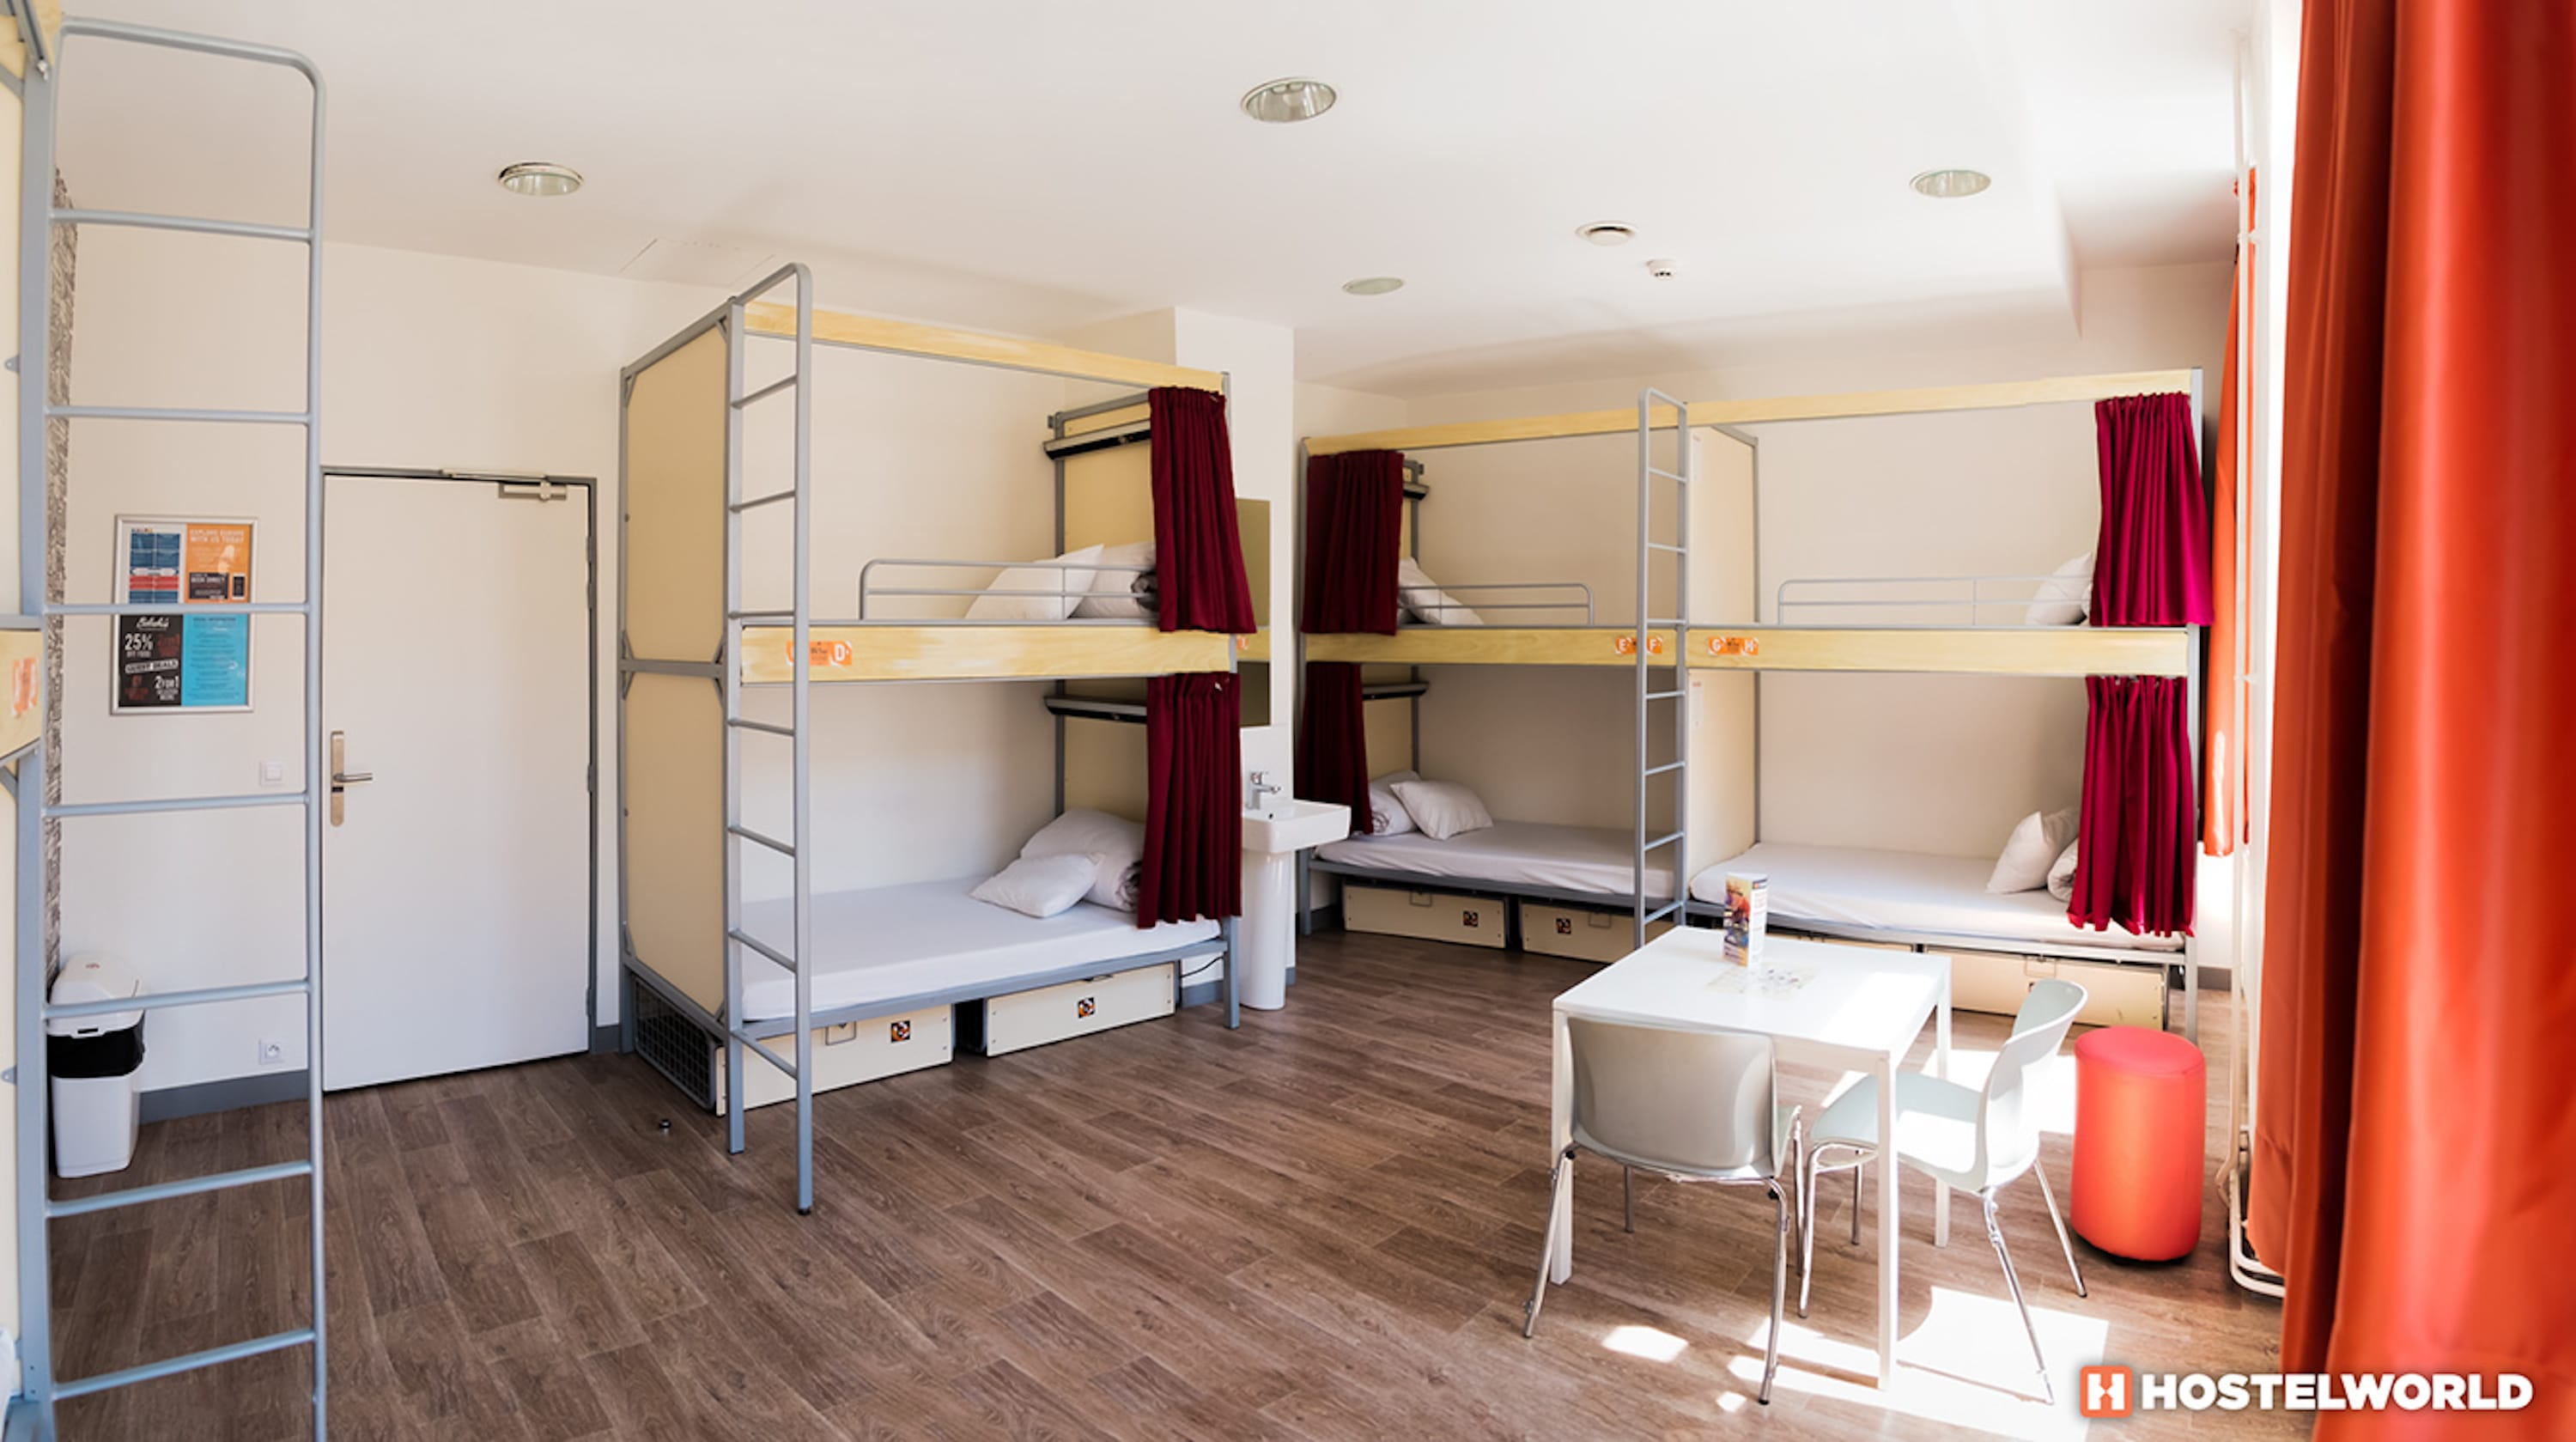 HOSTEL - St Christopher's Inn Gare du Nord